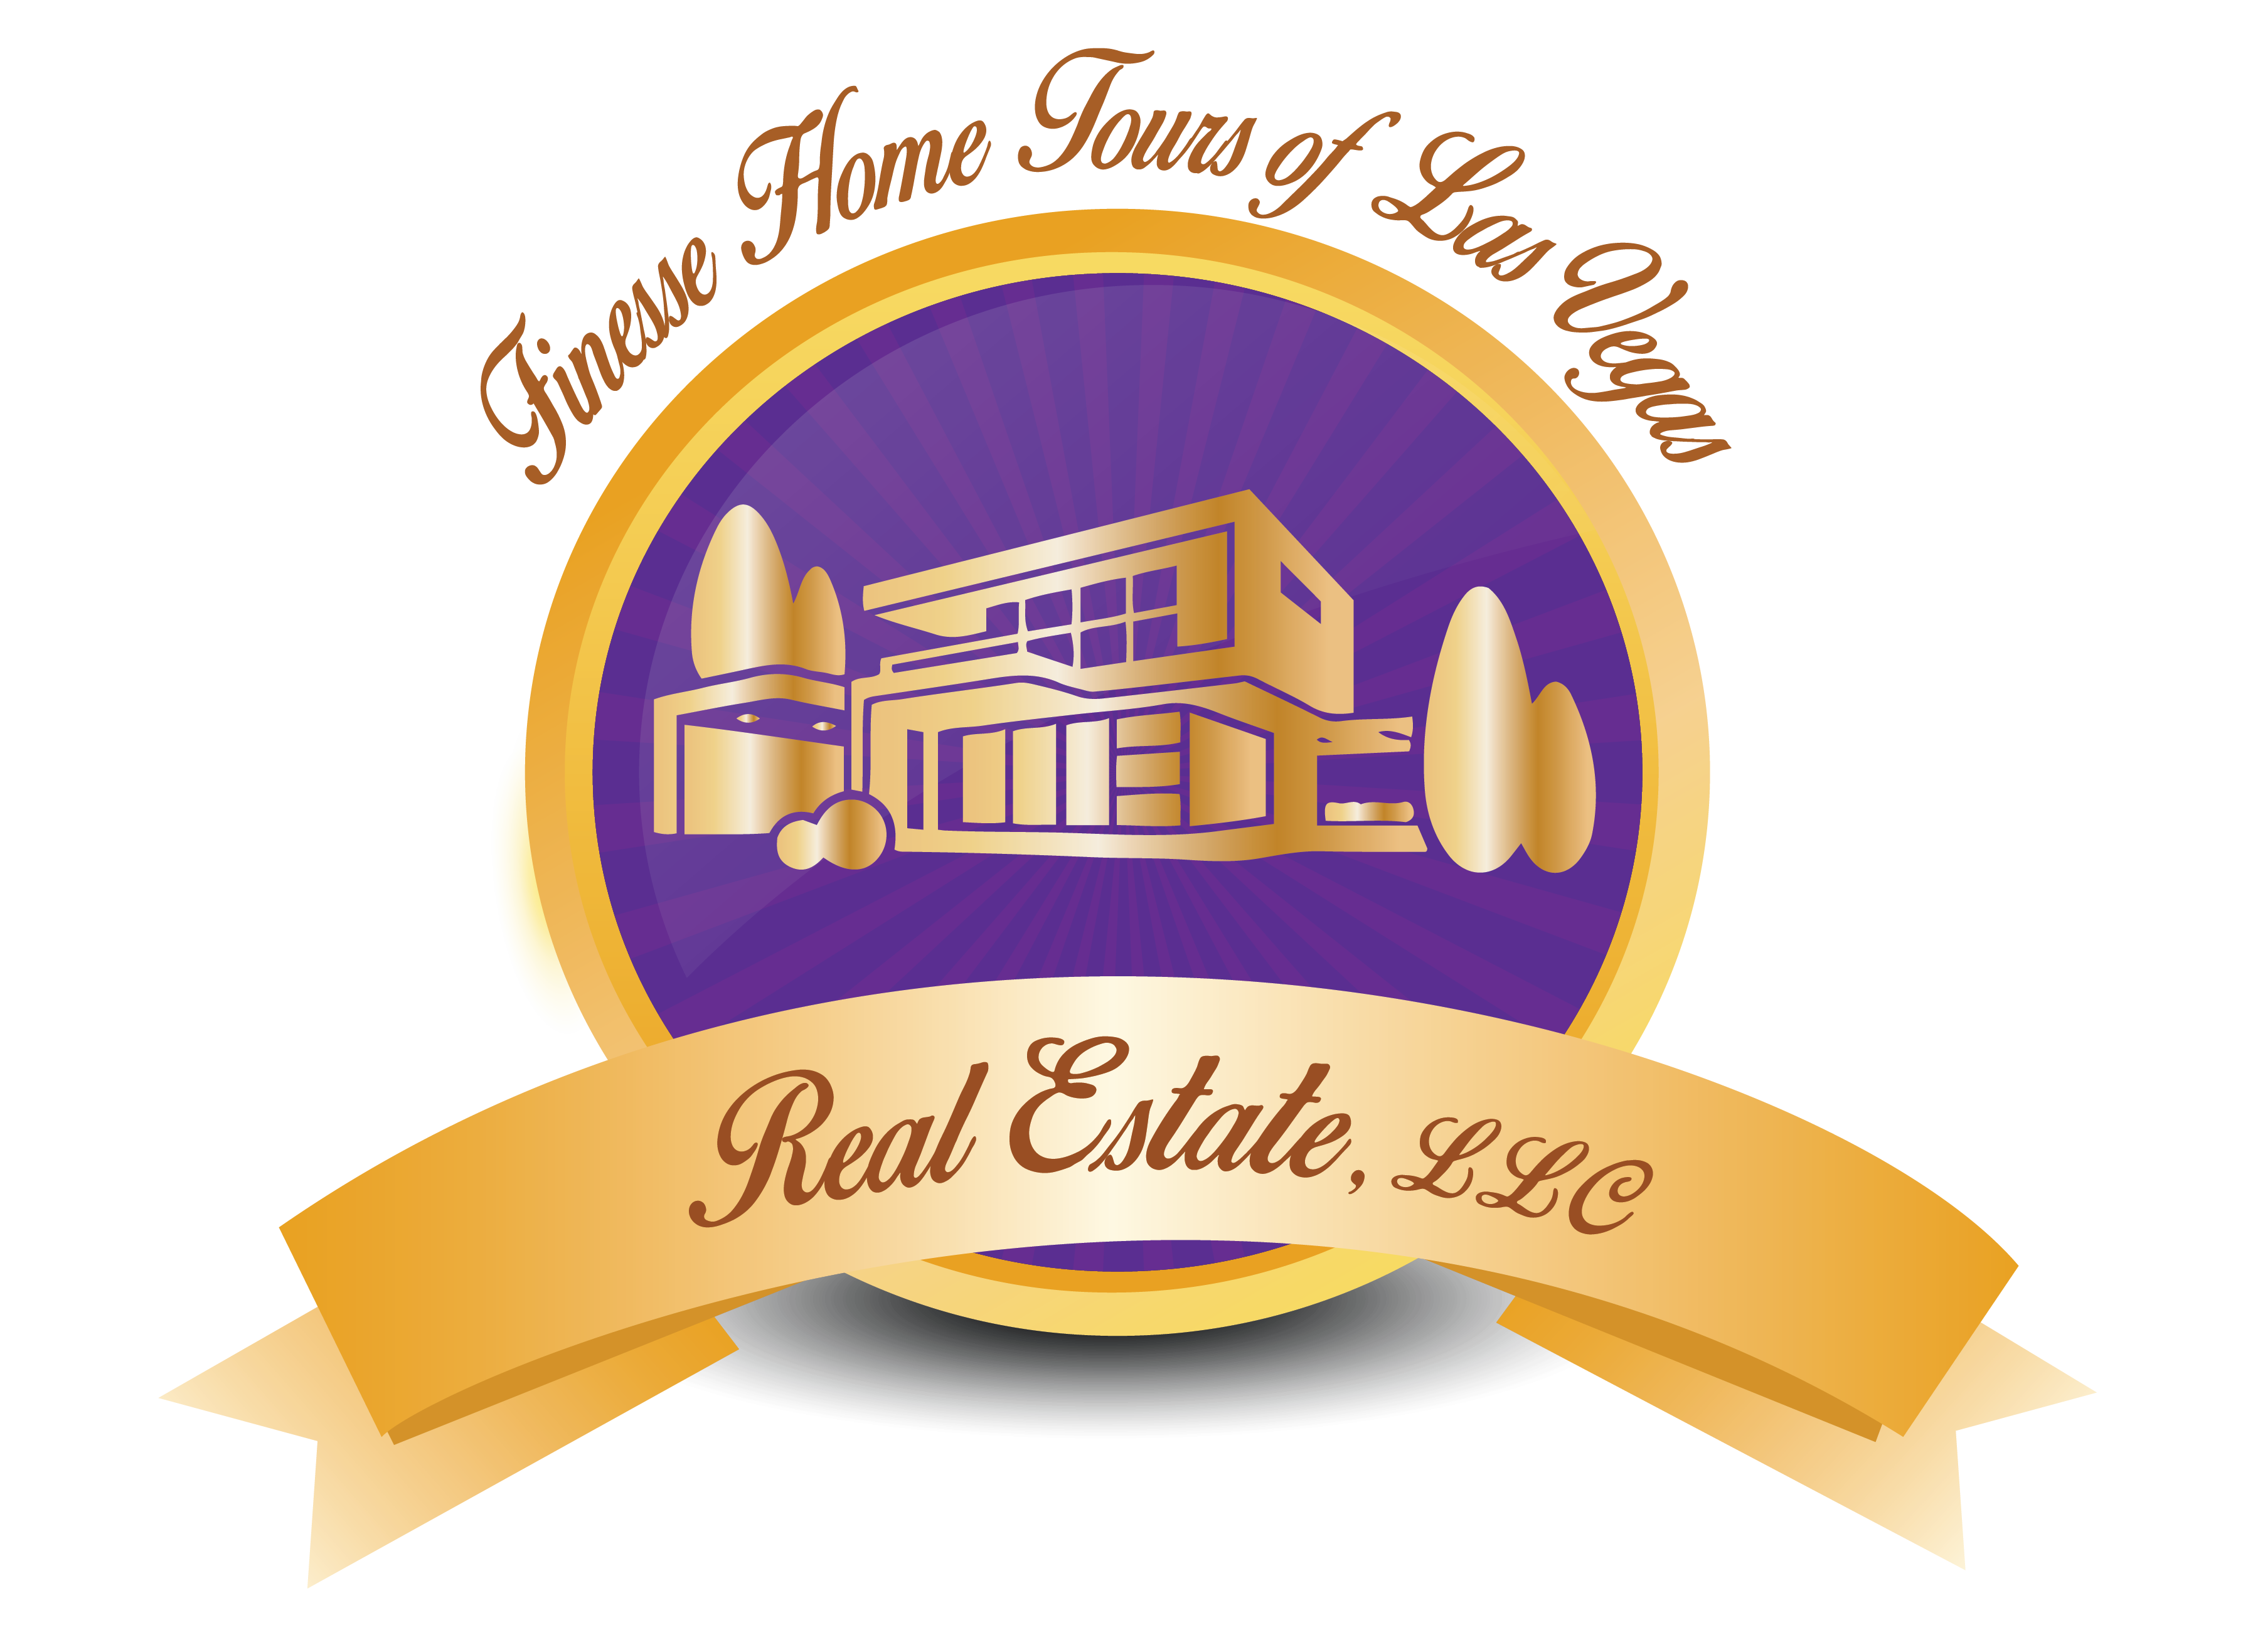 Finesse Home Tours of Las Vegas Real Estate LLC